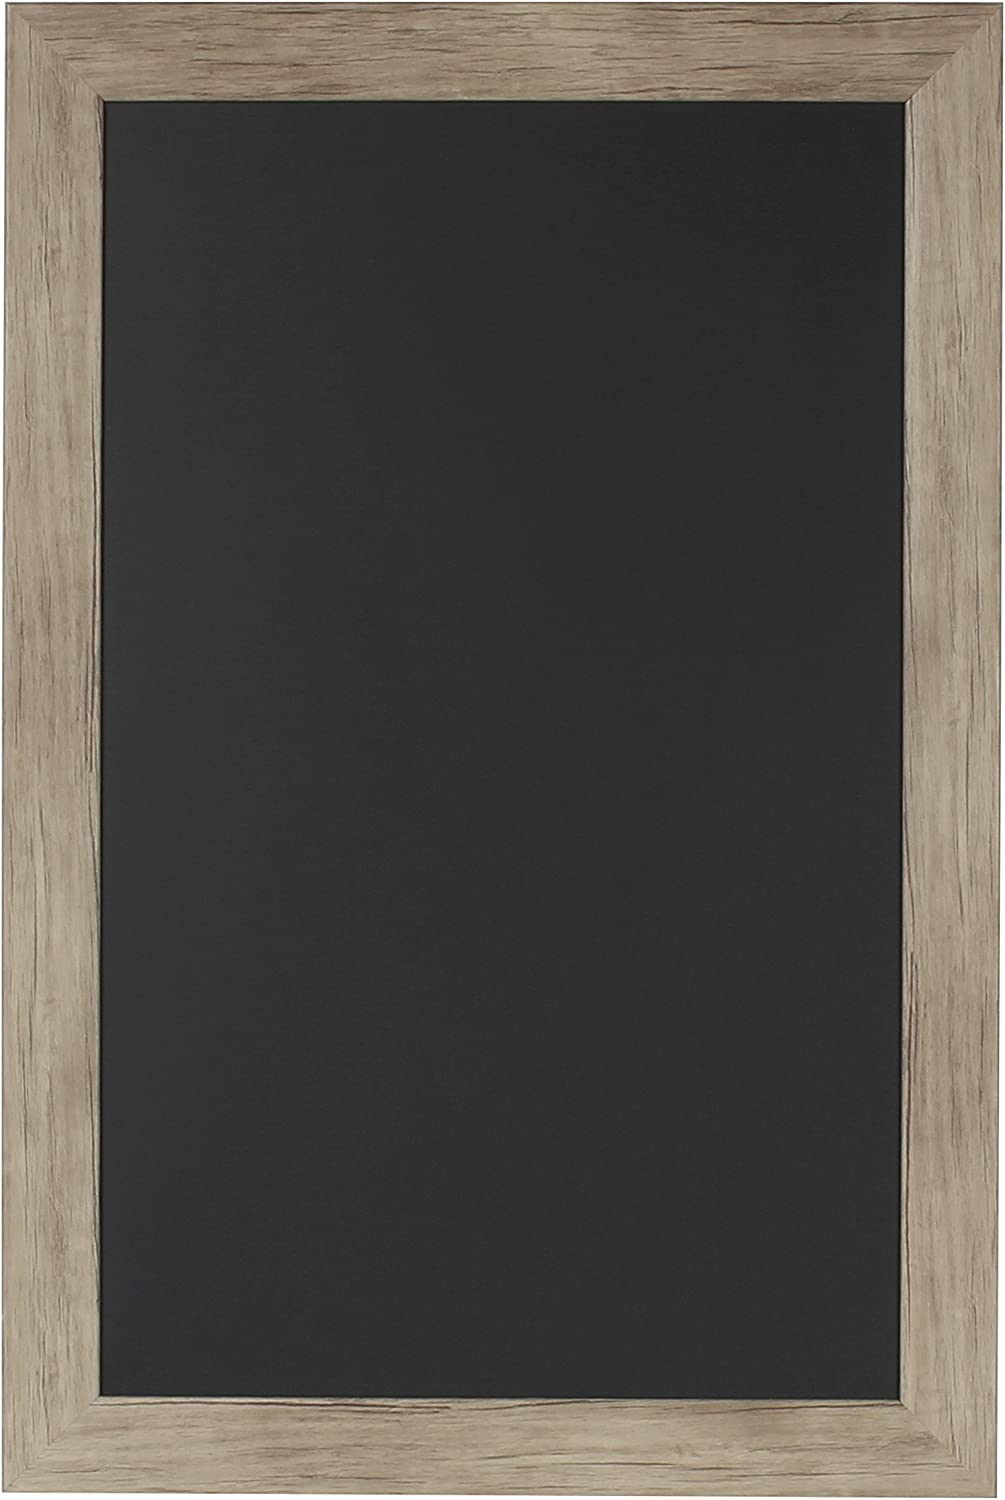 DesignOvation Beatrice Framed Magnetic Very popular Rustic Daily bargain sale Chalkboard 18x27